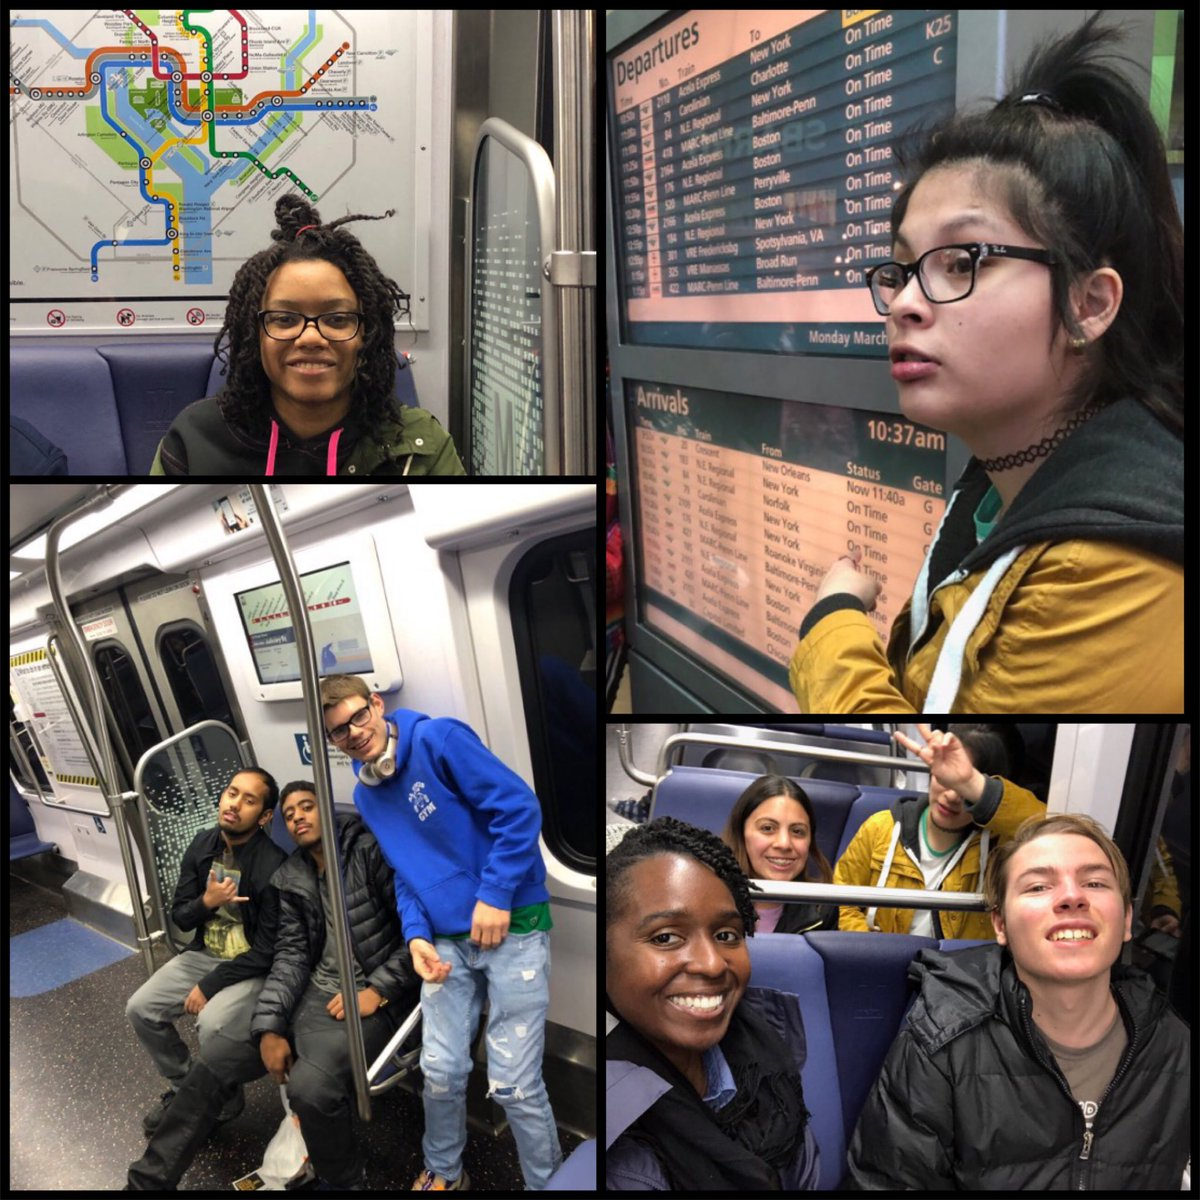 CBI &amp; travel training for some of our PEP students as they make their way to and from Union Station today. <a target='_blank' href='http://search.twitter.com/search?q=lifeskills'><a target='_blank' href='https://twitter.com/hashtag/lifeskills?src=hash'>#lifeskills</a></a> <a target='_blank' href='http://twitter.com/Margaretchungcc'>@Margaretchungcc</a> <a target='_blank' href='http://twitter.com/MsBakerACC'>@MsBakerACC</a> <a target='_blank' href='http://twitter.com/APHealeyACC'>@APHealeyACC</a> <a target='_blank' href='http://twitter.com/APSCareerCenter'>@APSCareerCenter</a> @ <a target='_blank' href='https://t.co/3siU1MRBdu'>https://t.co/3siU1MRBdu</a>